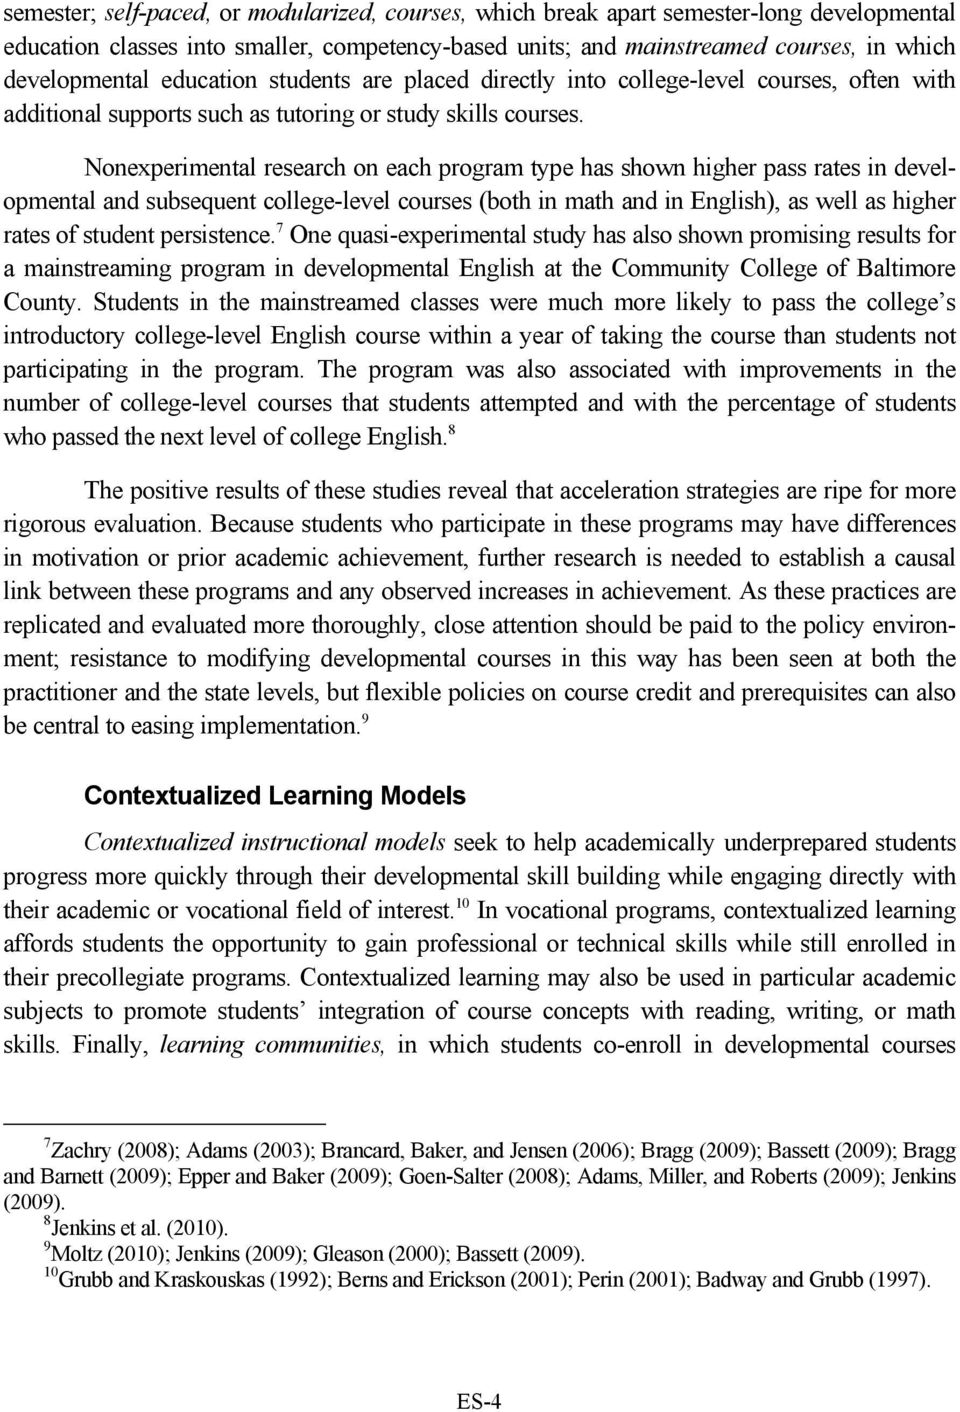 Nonexperimental research on each program type has shown higher pass rates in developmental and subsequent college-level courses (both in math and in English), as well as higher rates of student